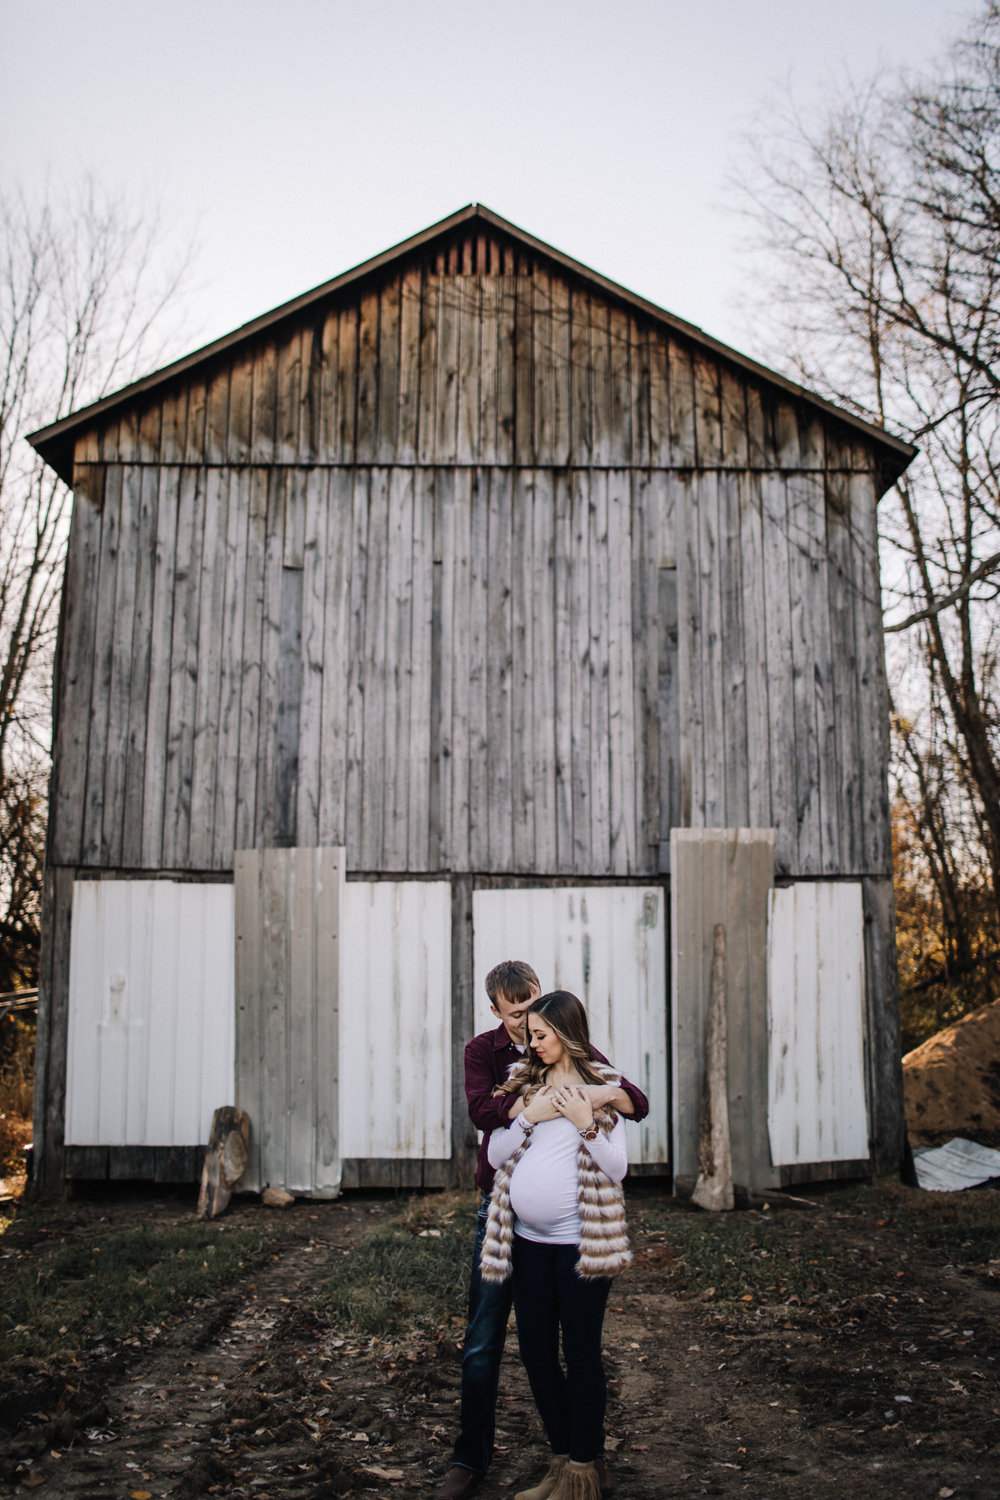 billie-shaye-style-photography-www.billieshayestyle.com-fall-farm-maternity-session-nashville-tennessee-8993.jpg